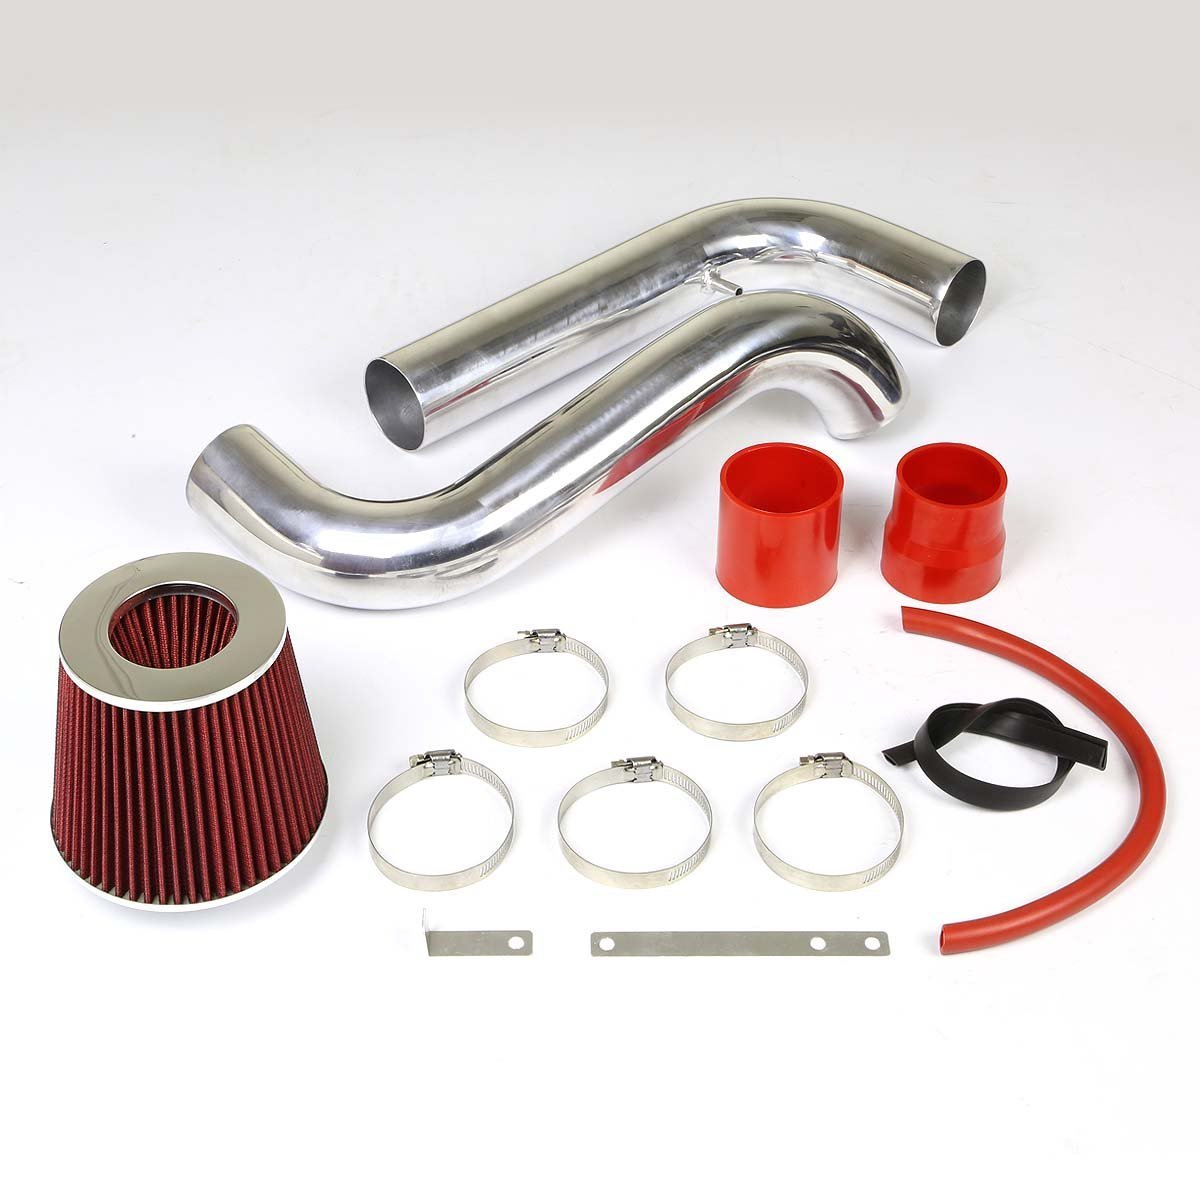 Acura Integra GS RS LS Cold Air Intake Red - Acura integra cold air intake